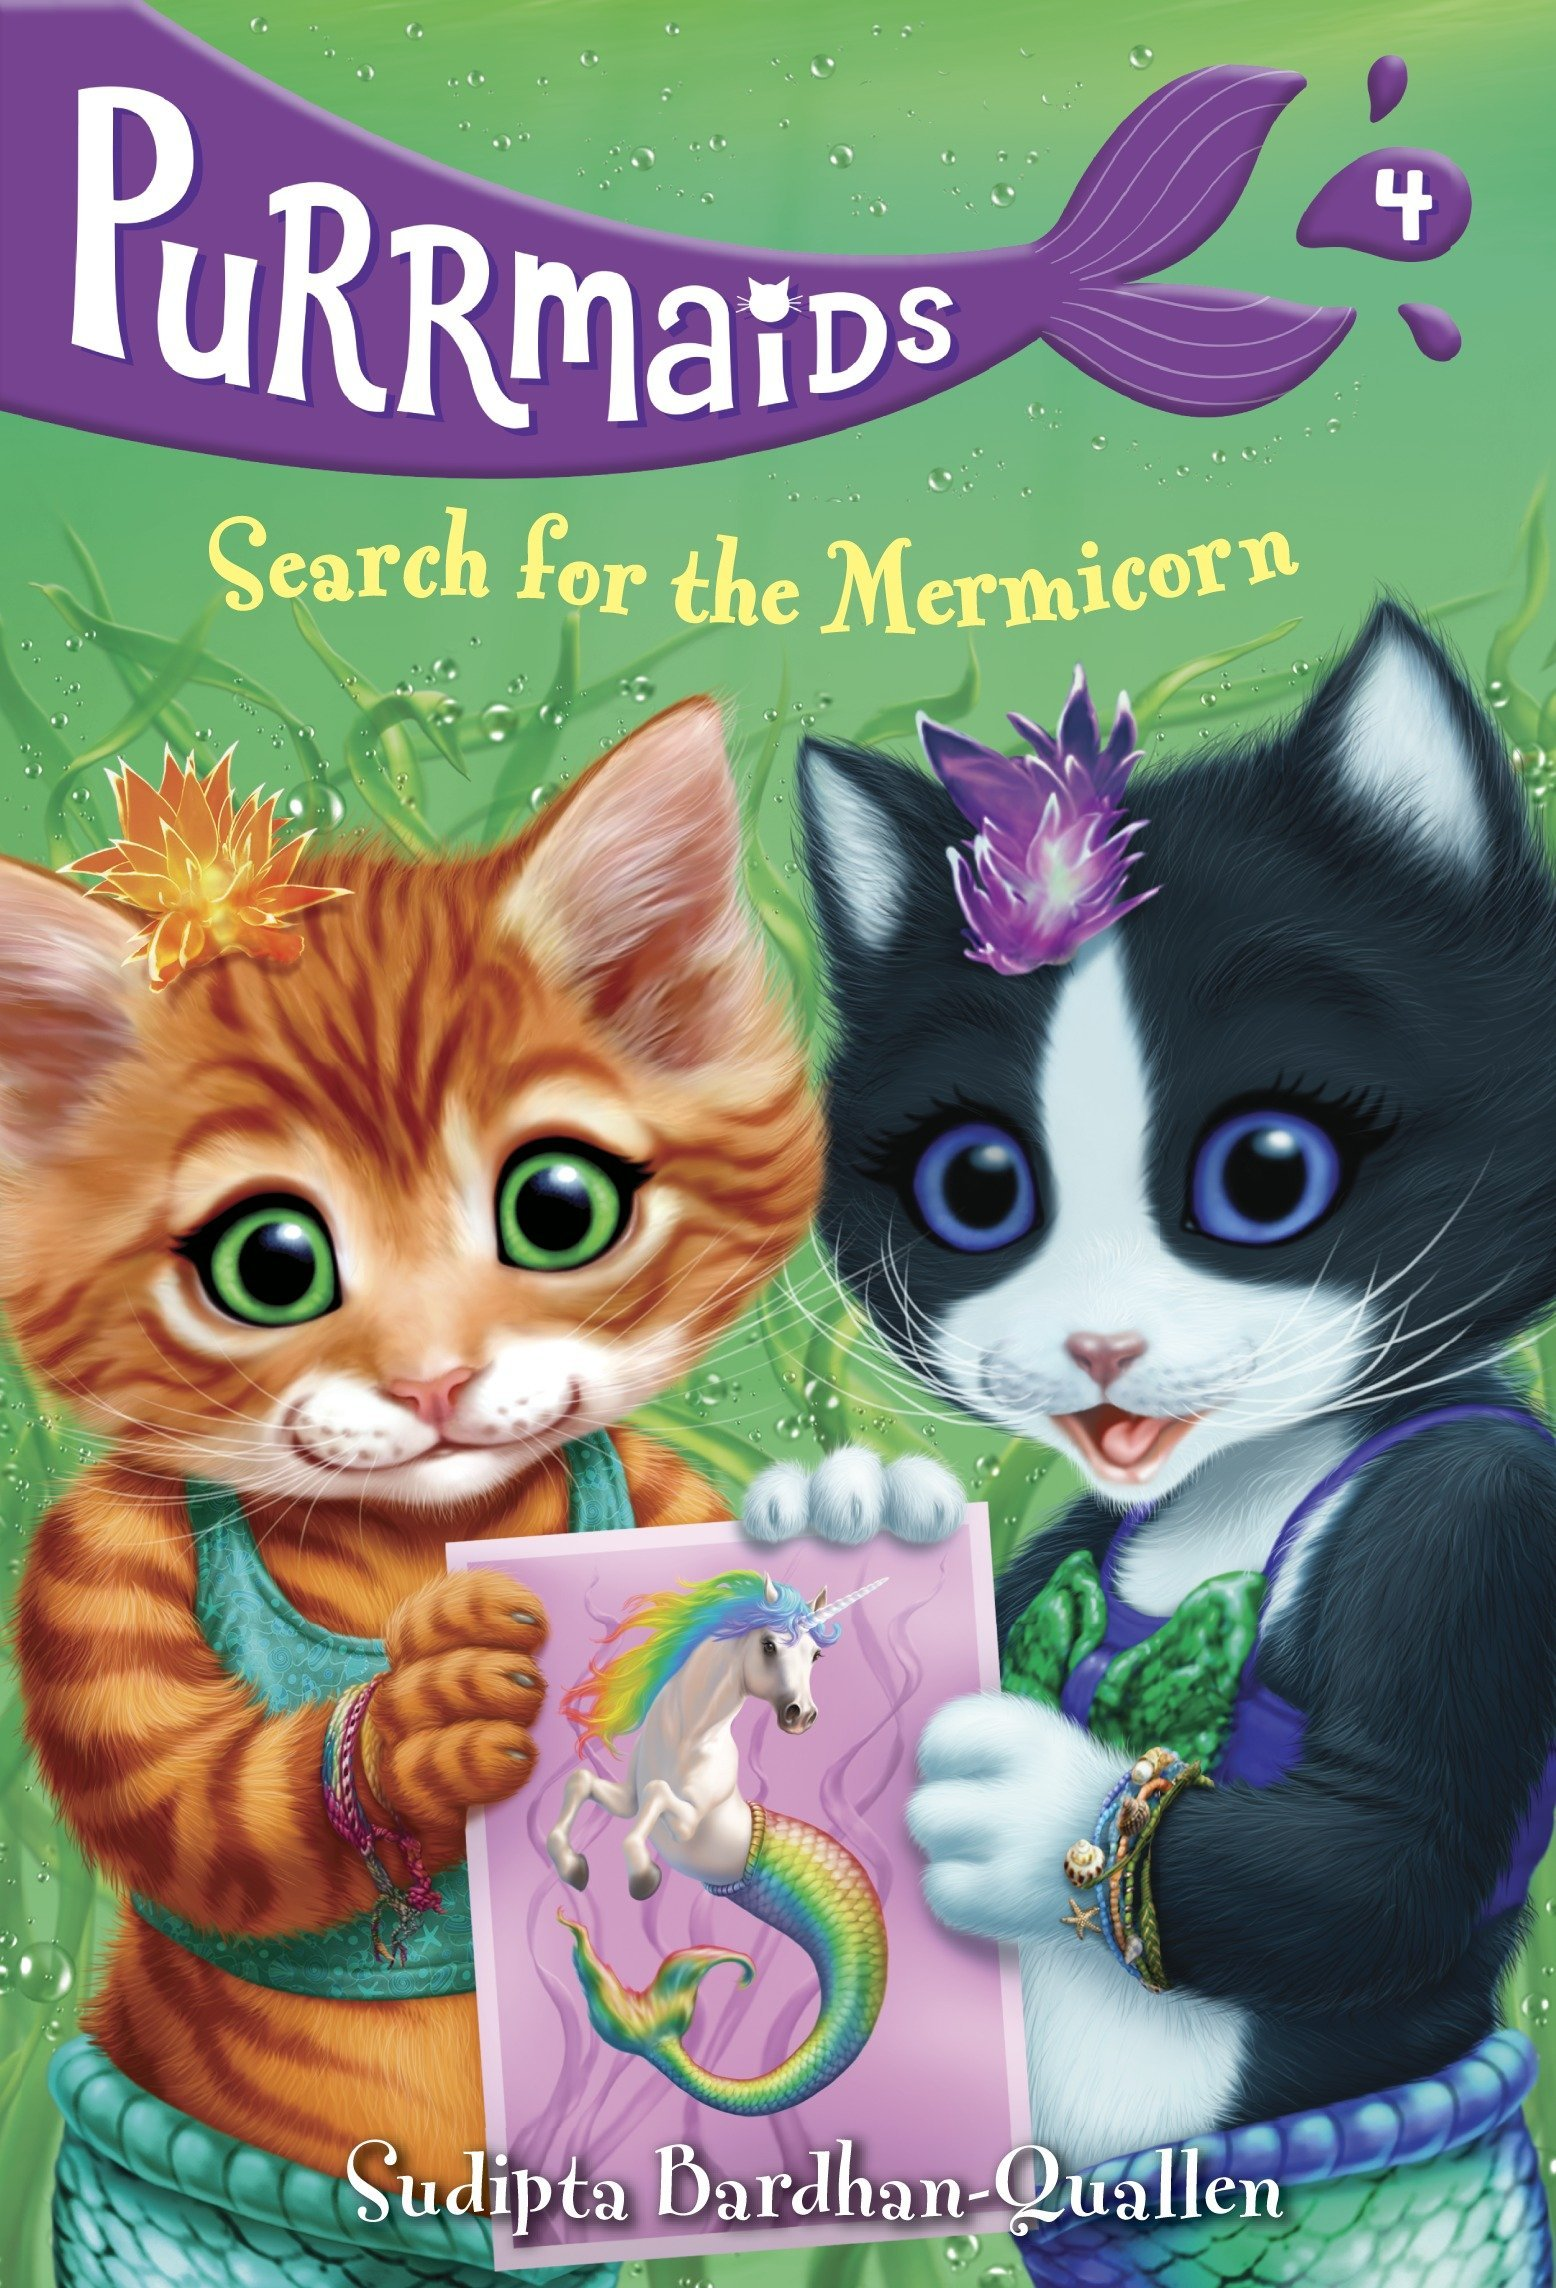 Purrmaids 4 Search for the Mermicorn